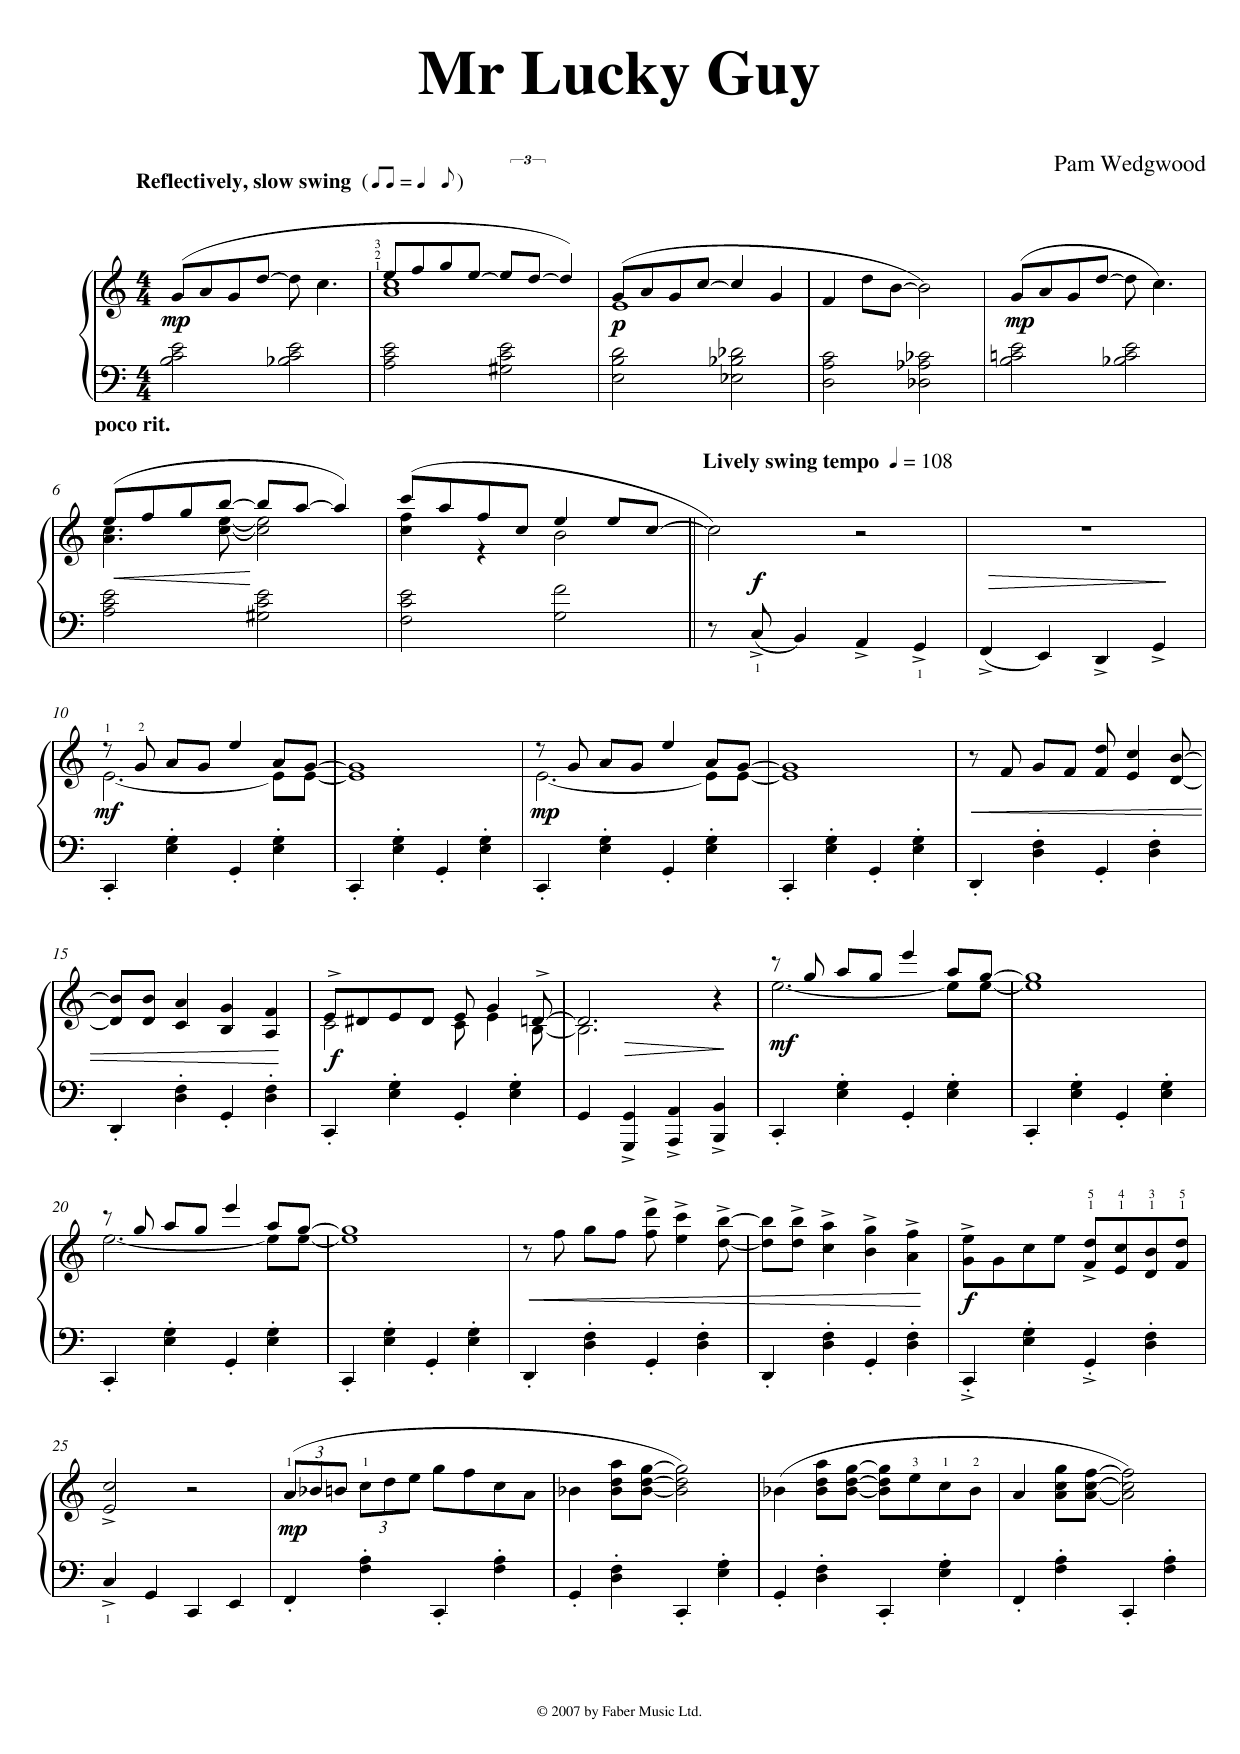 Pam Wedgwood Mr. Lucky Guy sheet music notes and chords. Download Printable PDF.